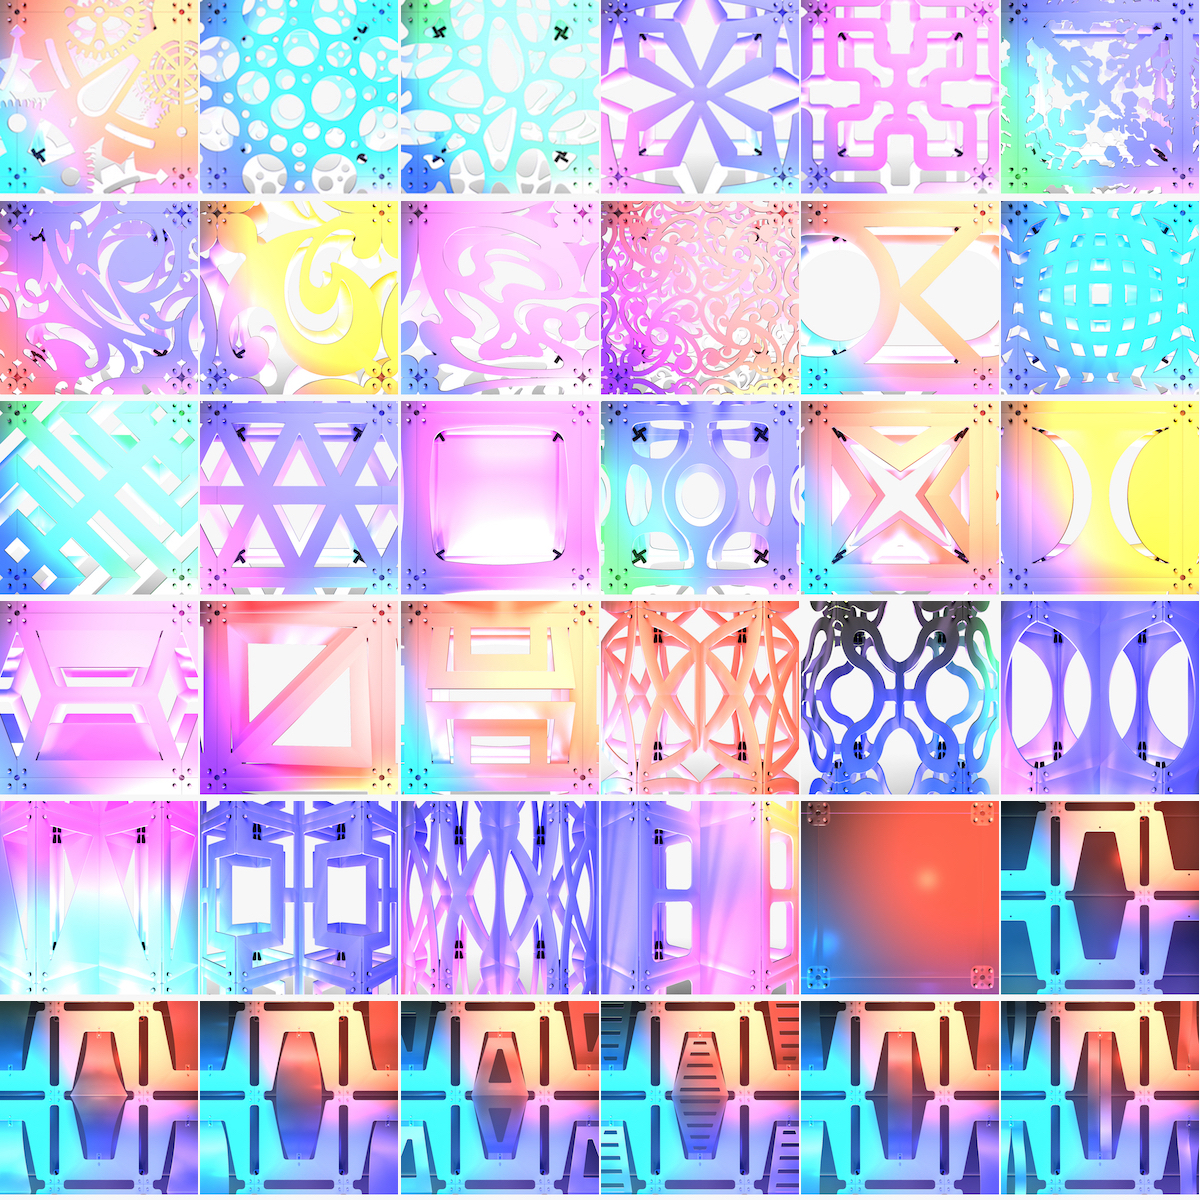 70-00-StageDecorCollection_00_a